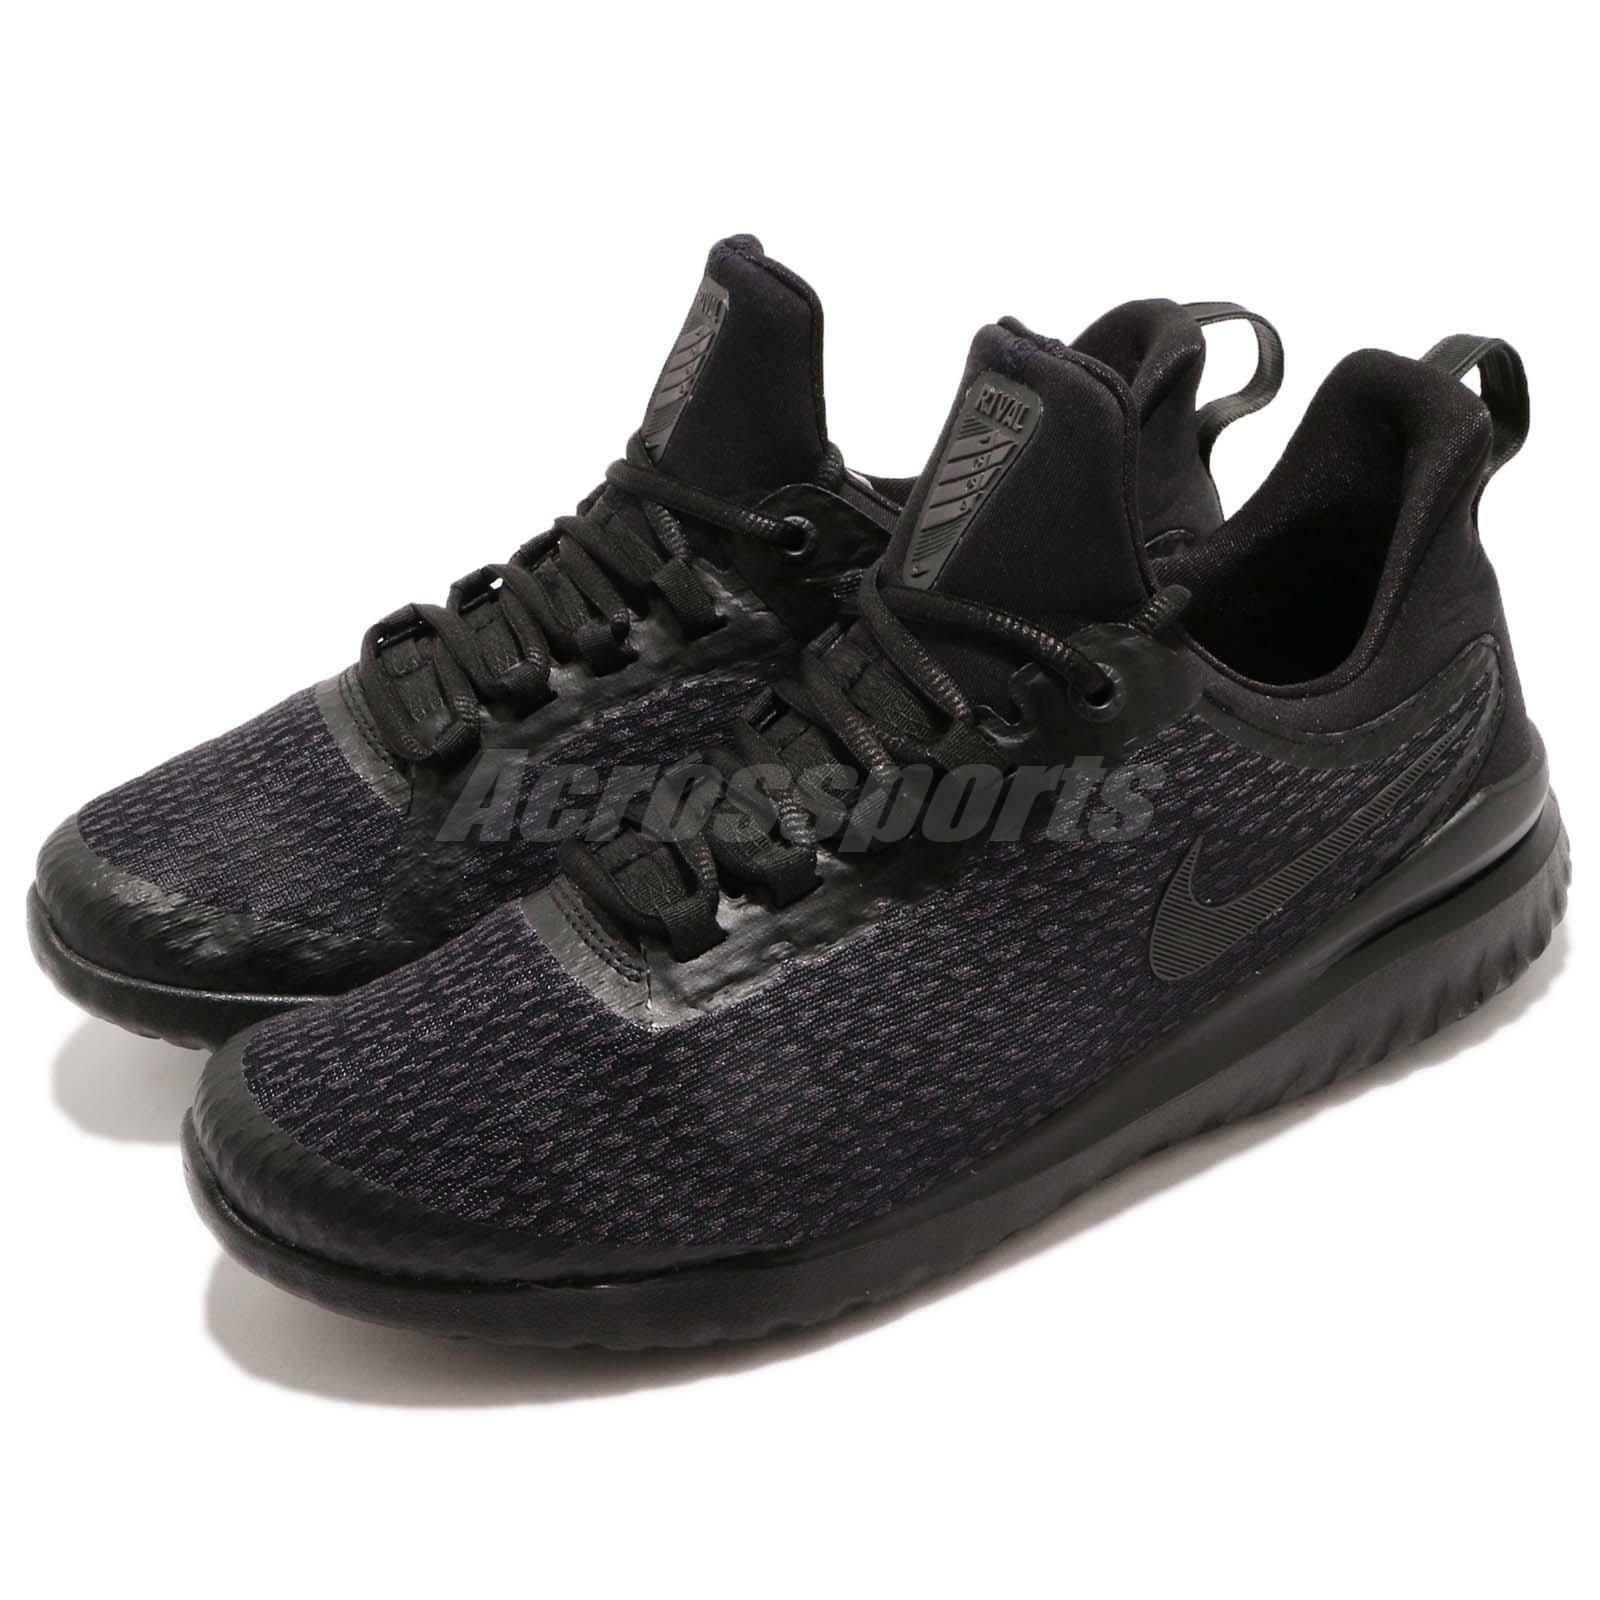 Nike Renew Rival 2E Wide Oil Grey Black Men Running shoes Sneakers AV8456-002